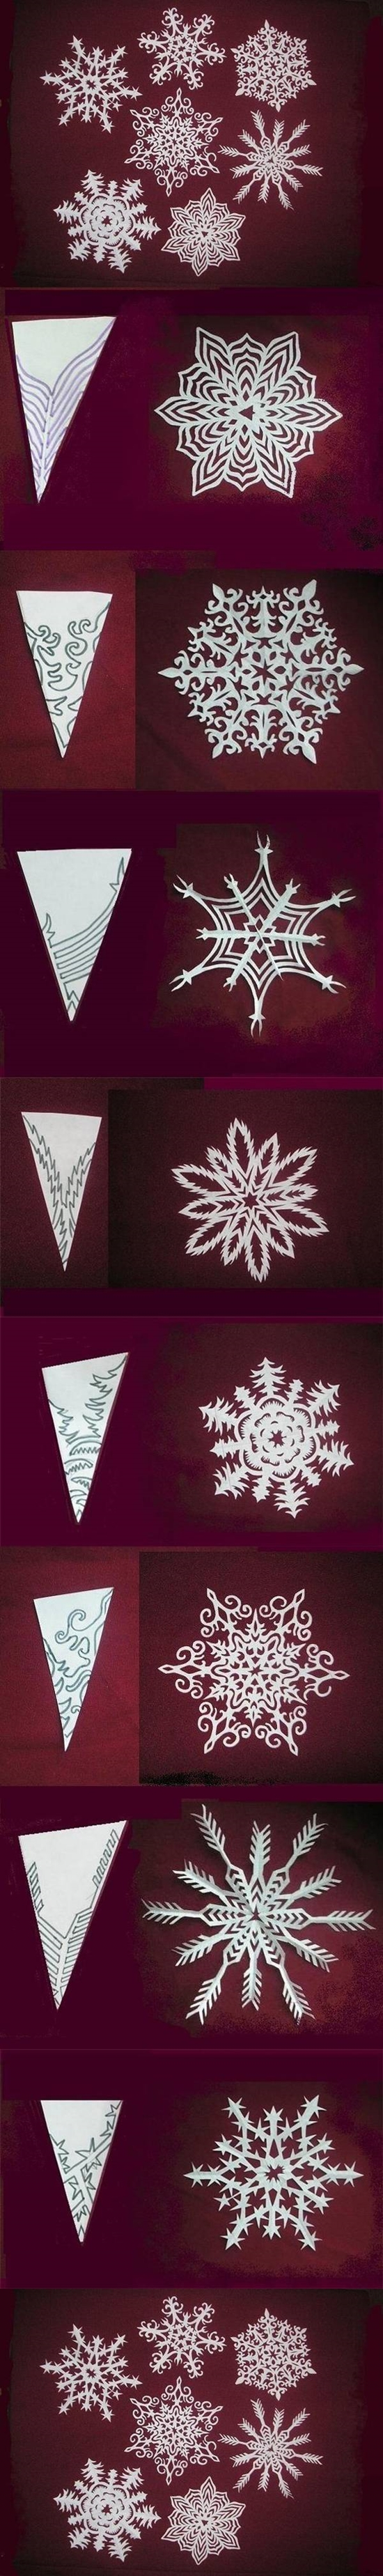 Paper Snowflake Patterns 1